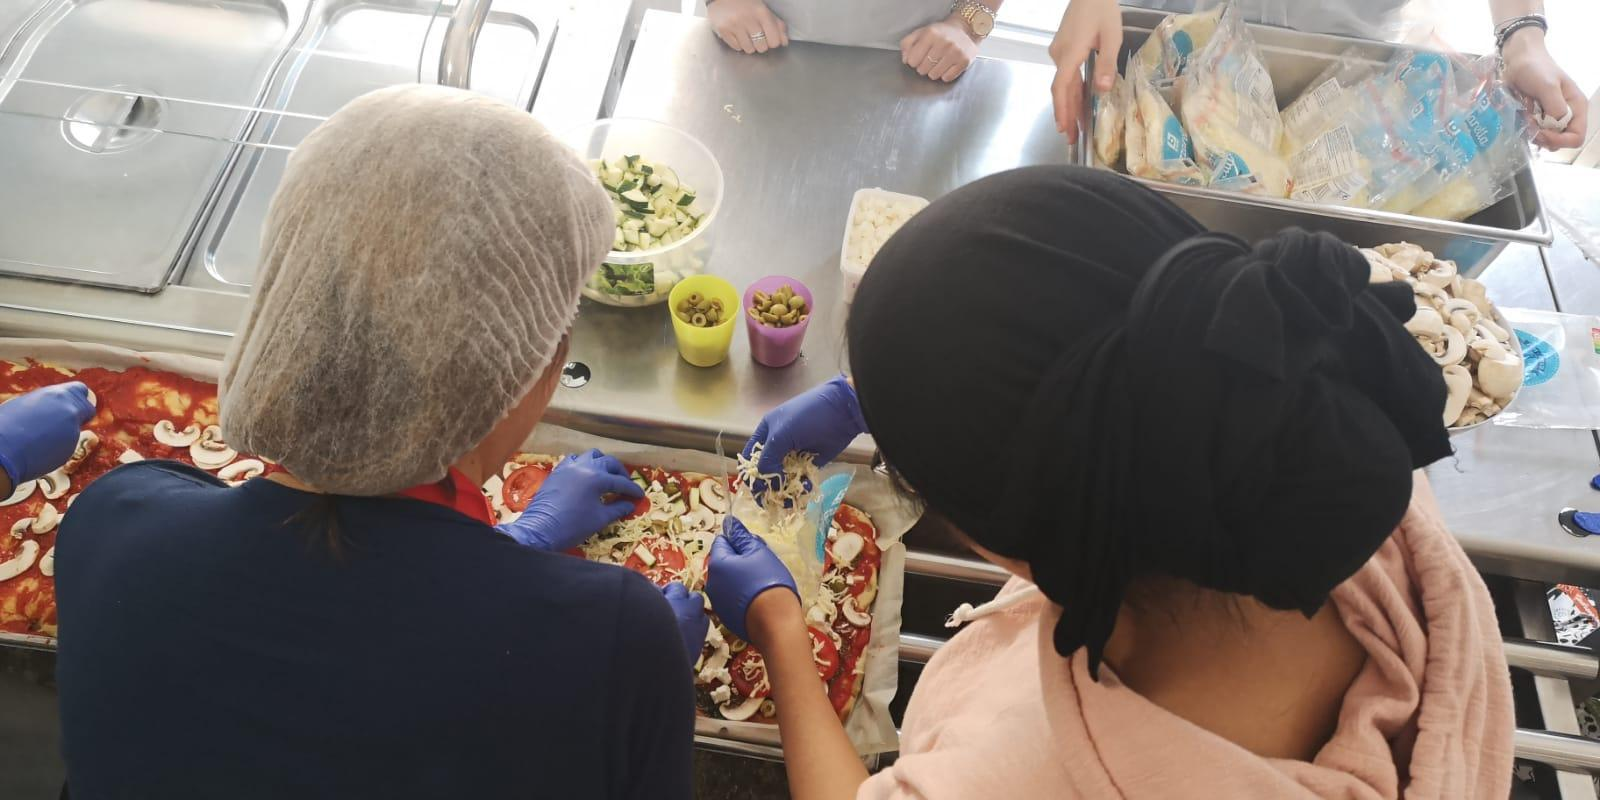 Pizza-making with the women at the Jette centre